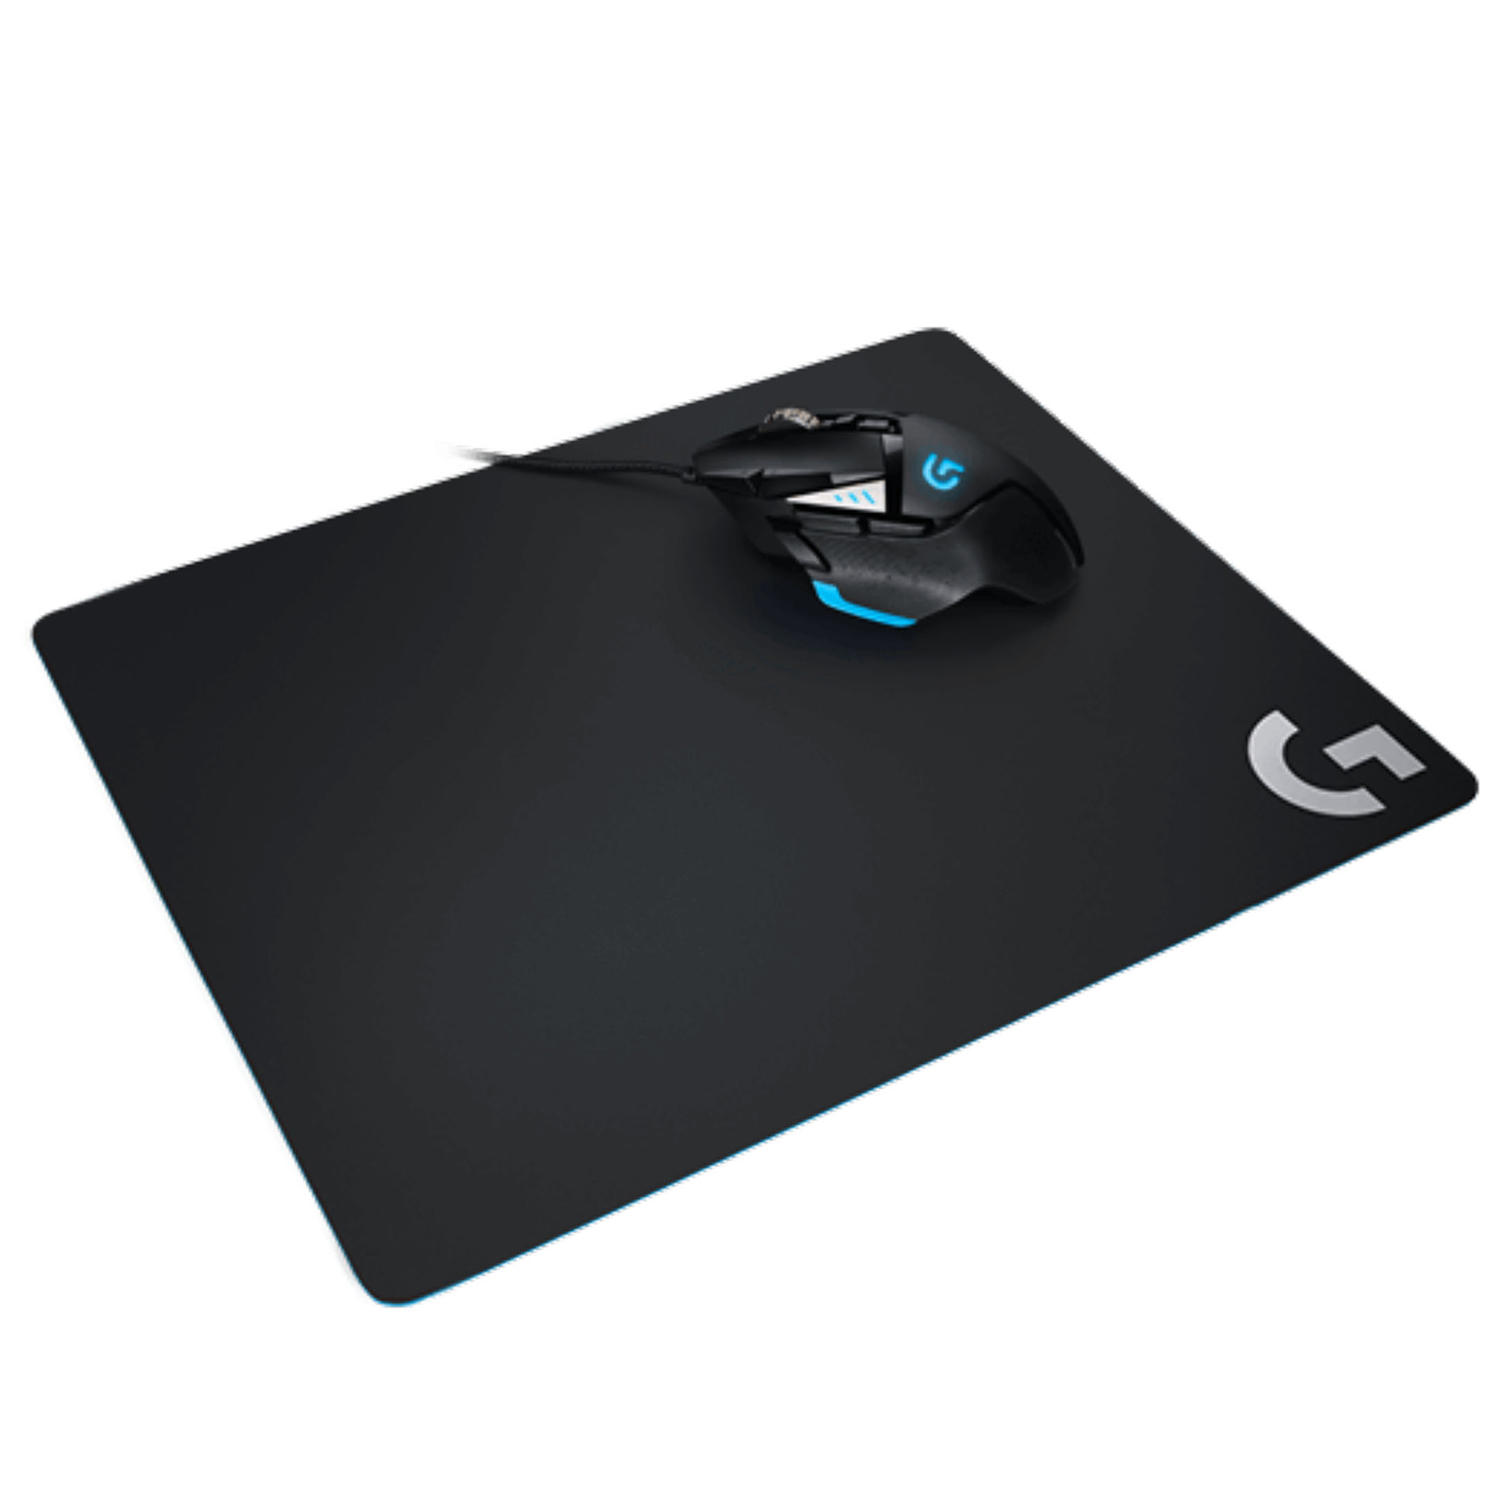 Logitech G502 Hero Mouse and G240 Mouse Pad Bundle